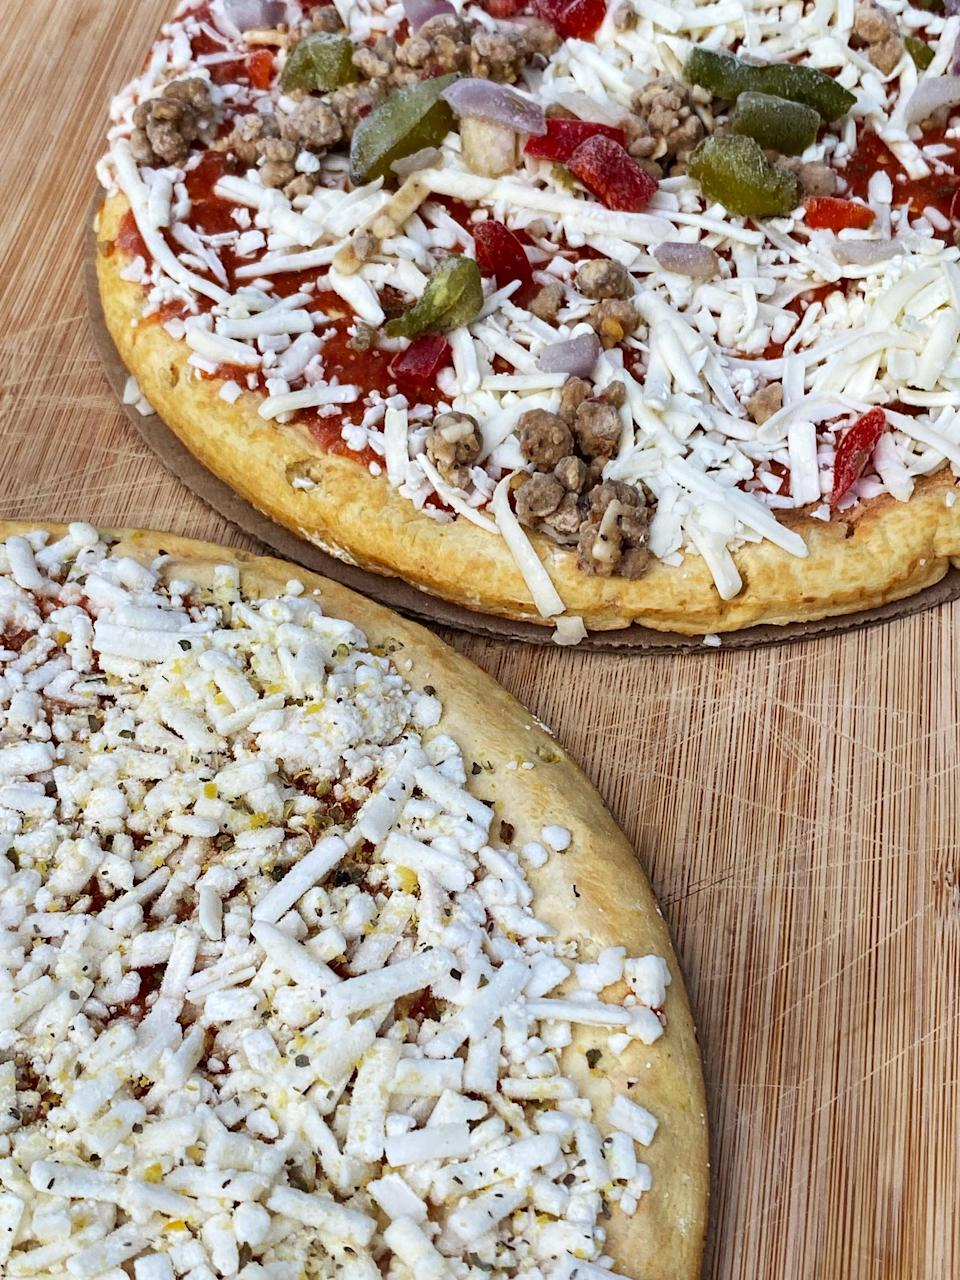 <p>Here's what the frozen pizzas look like before I popped them in the oven. I was pleasantly surprised at how much cheese they both had. And the toppings amount was decent on the Supreme pizza, although a little more would have been better. I baked these on a pizza stone in my oven at 400 °F, but the package said you can just place it on the rack.</p>